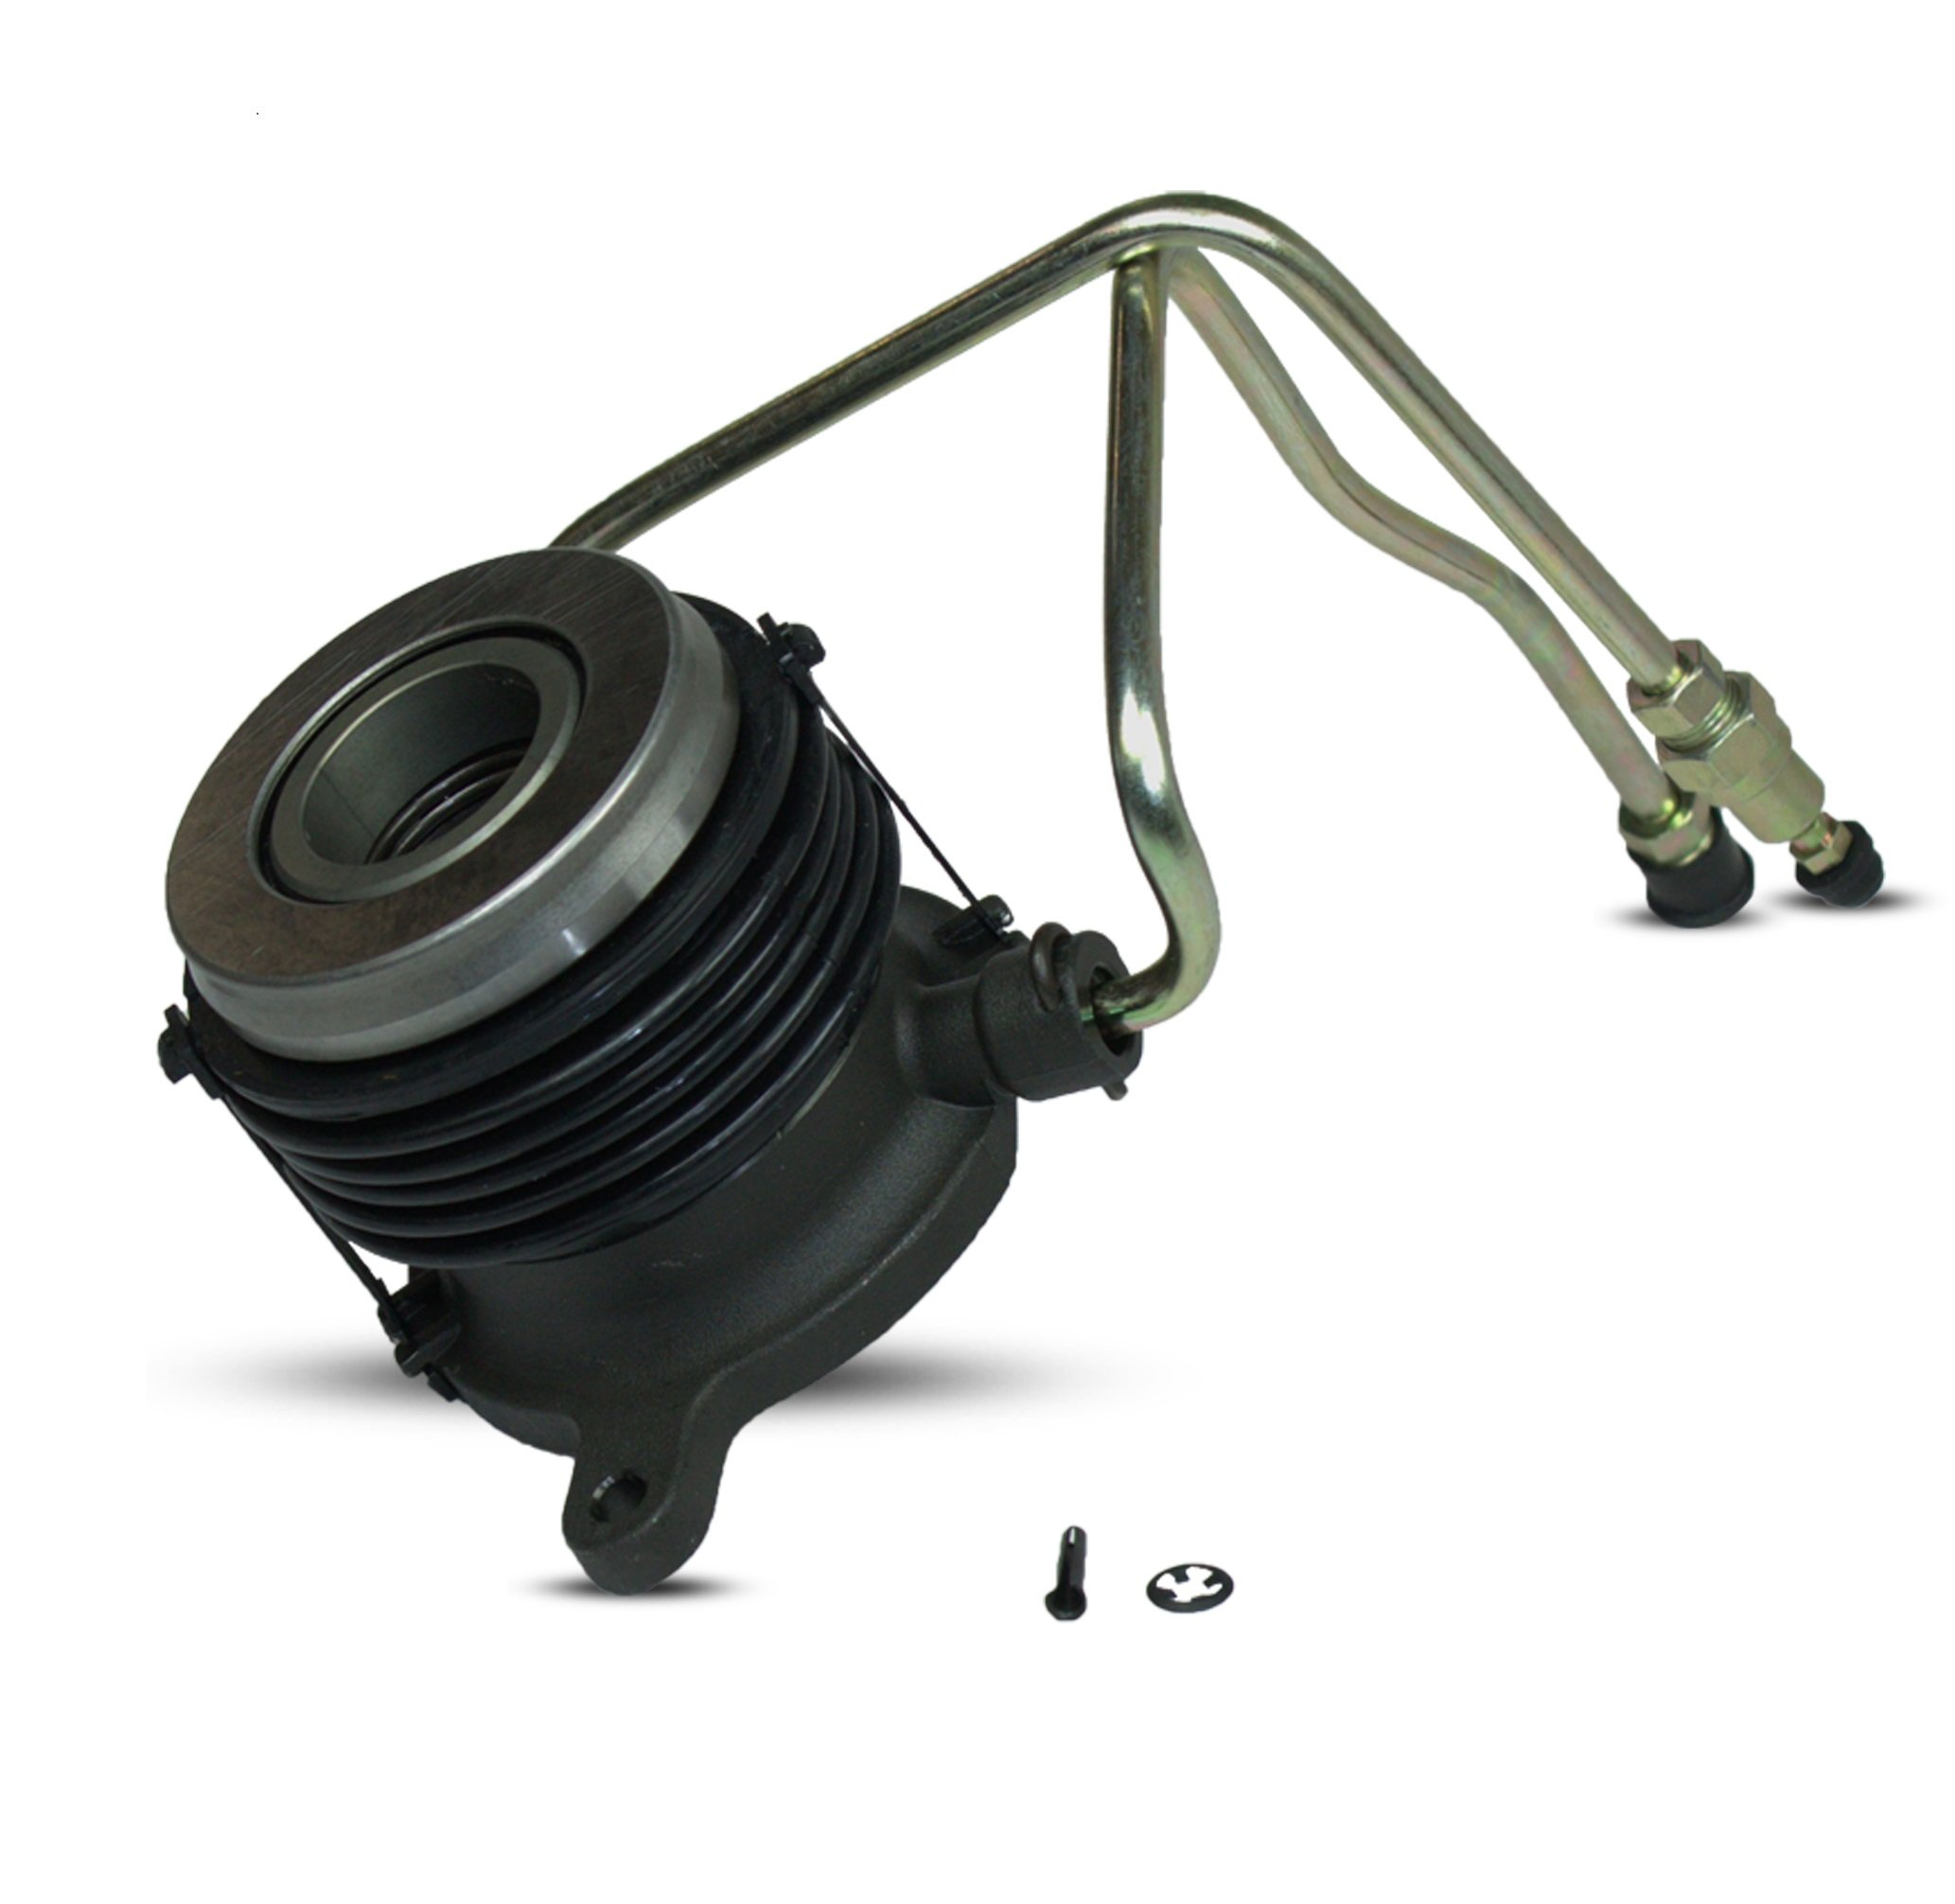 Clutch Slave Cylinder For Wrangler Comanche Cherokee Wagoneer 4.0L 4.2L